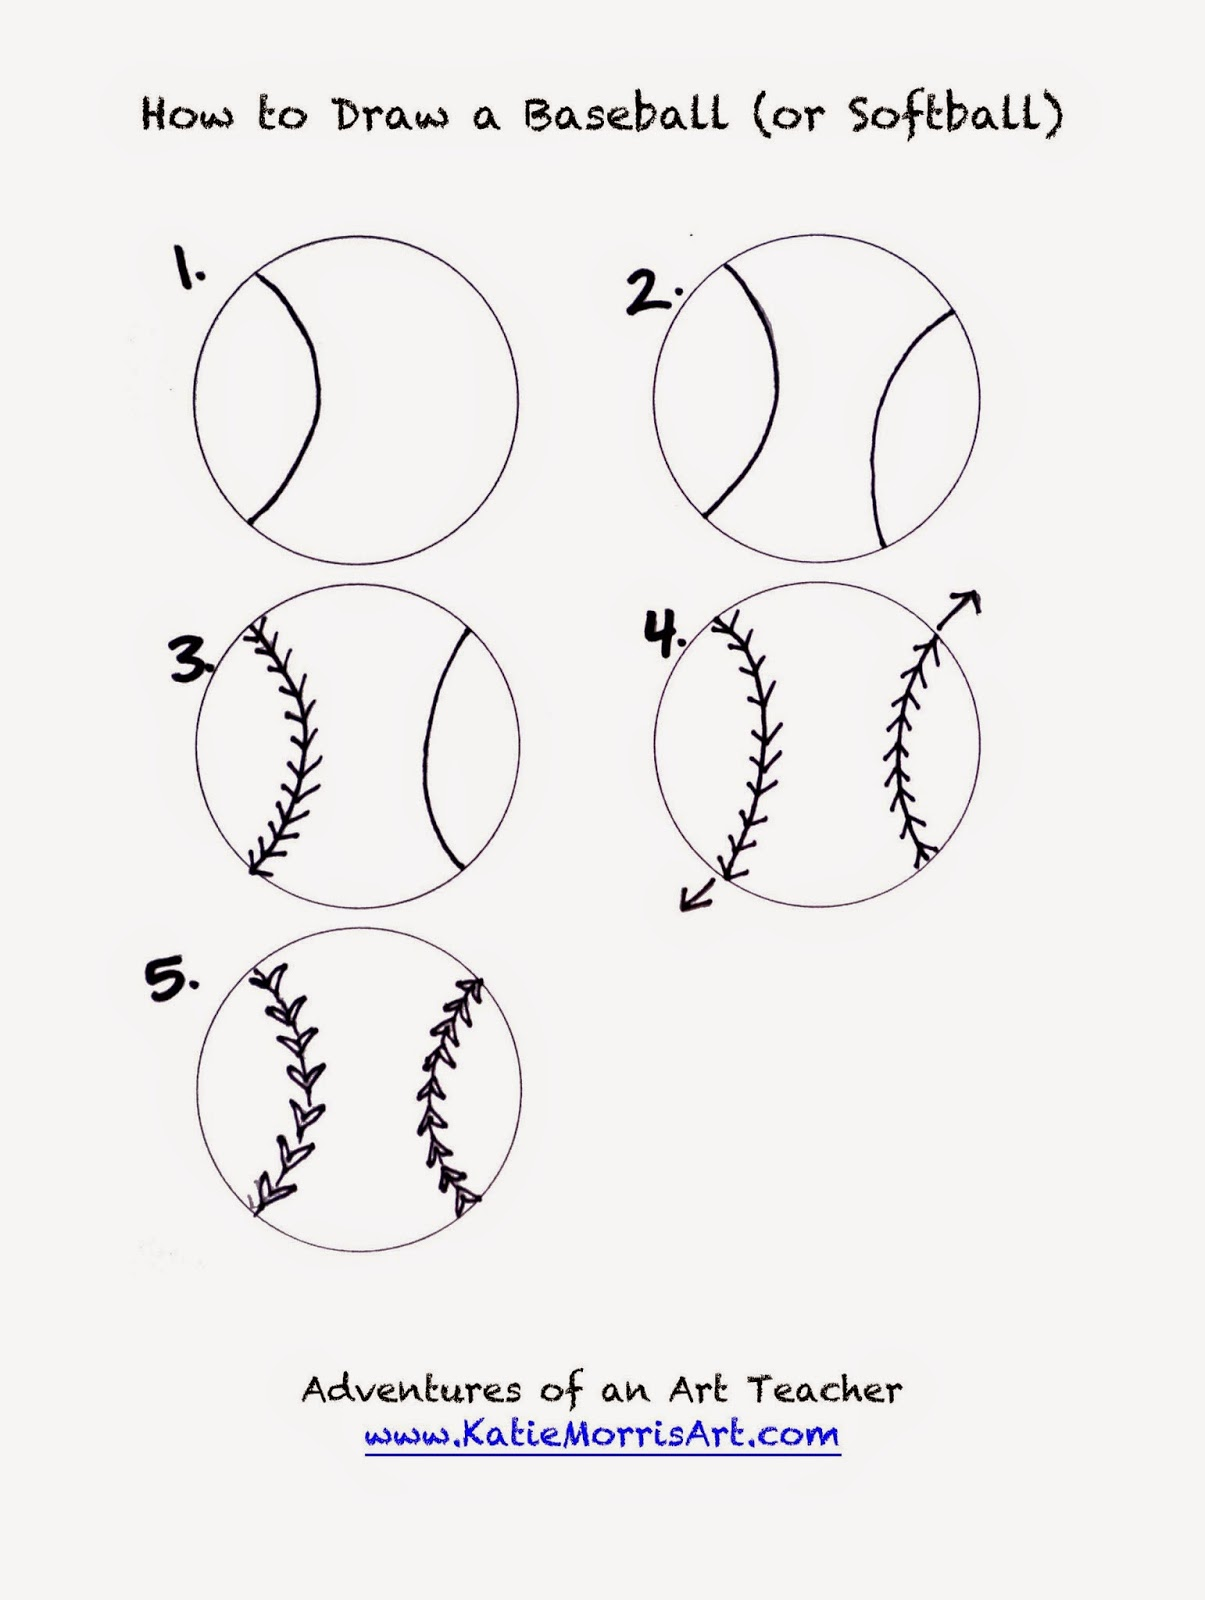 Drawn baseball softball  to Sports How Draw